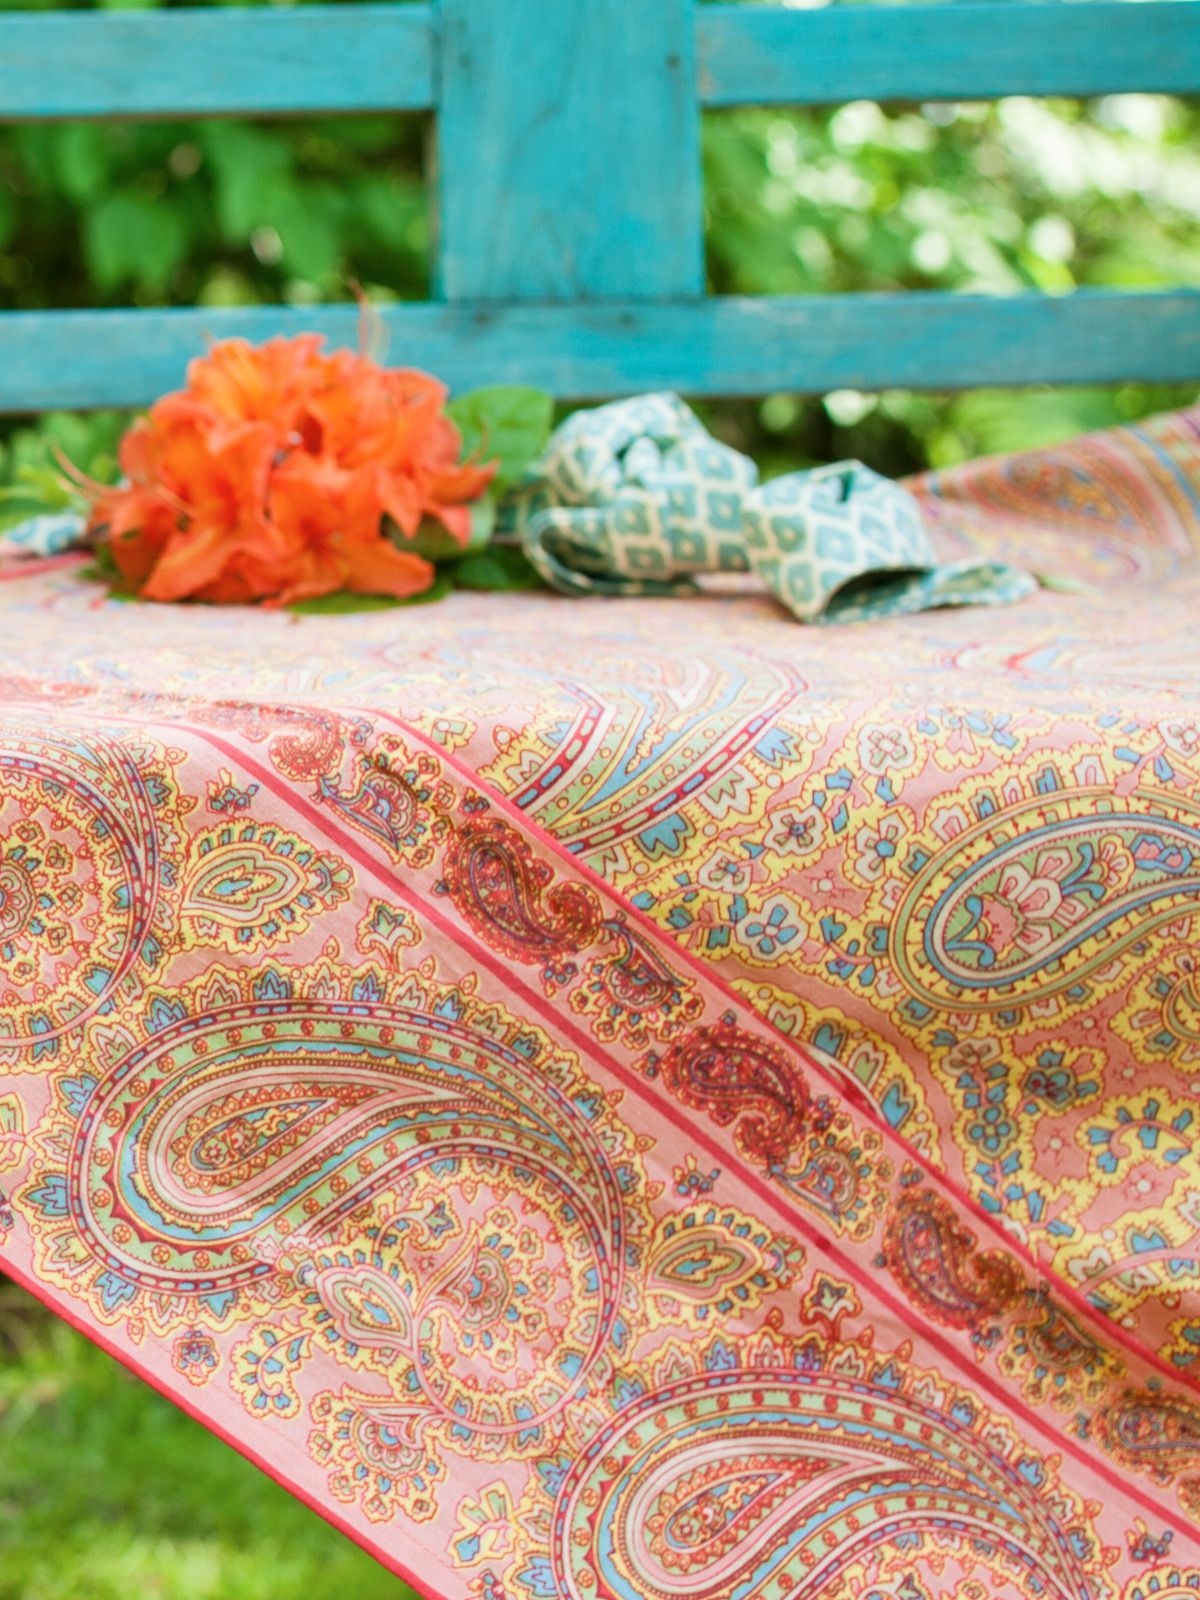 Patient Paisley Tablecloth   Coral | Table Linens U0026 Kitchen, Tablecloths  :Beautiful Designs By